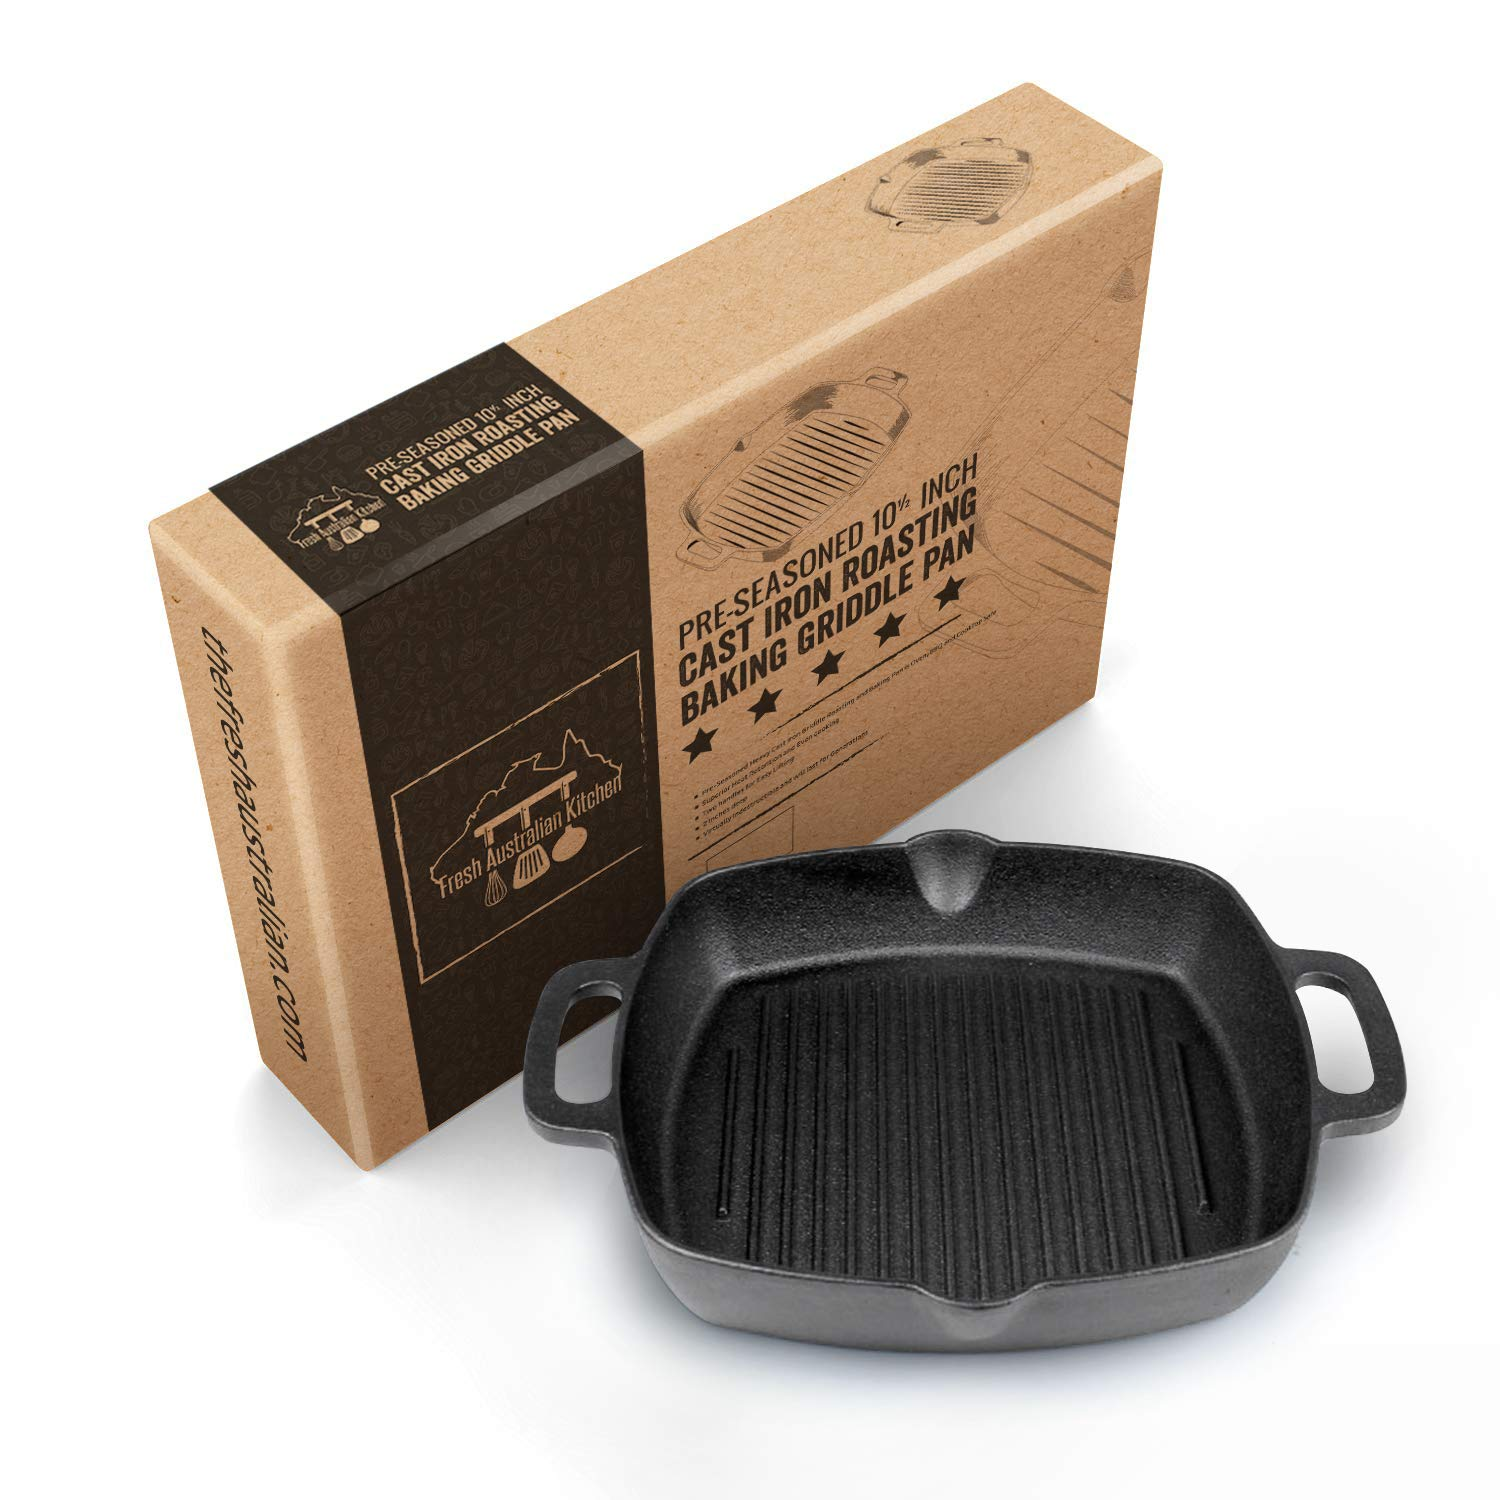 Pre-seasoned Cast Iron 12 Inch (10.5 Inches Square) Baking or Roasting Tray, Grill Pan and Skillet. For BBQ, Stove, Oven or Camping. Compact Shape. By Fresh Australian Kitchen. by Fresh O2